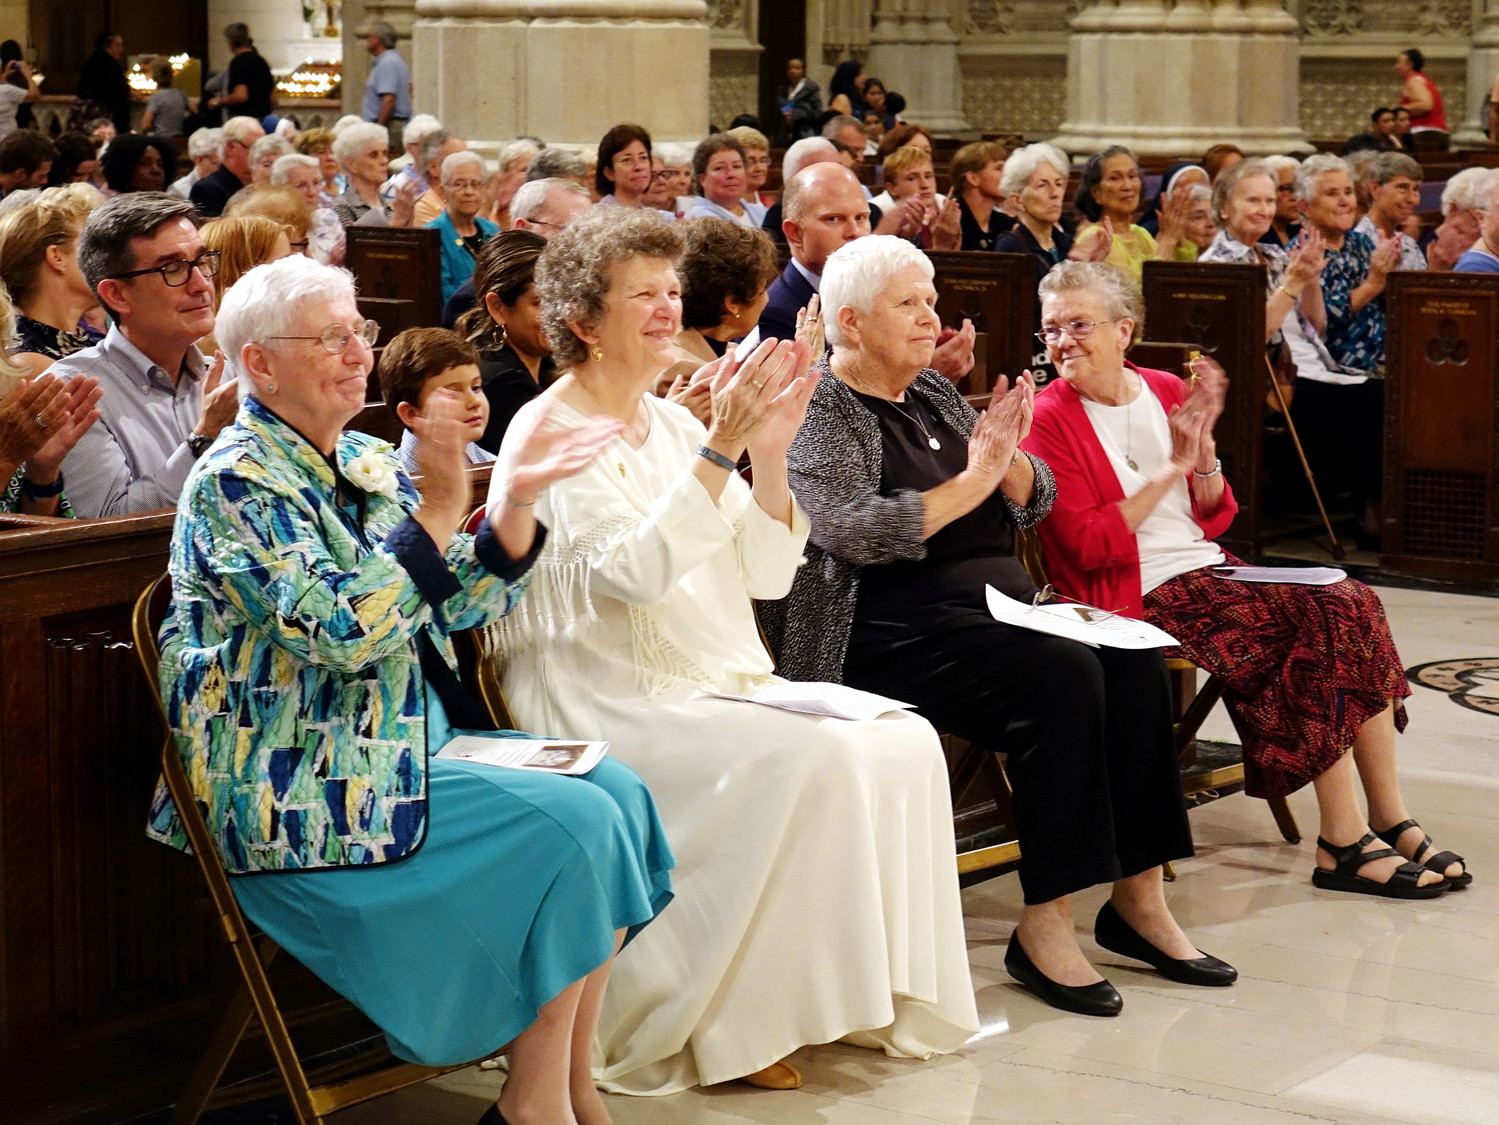 Several Sisters of Charity of New York applaud. The new Shrine of St. Elizabeth Ann Seton is the beneficiary of community support under the leadership of Sister Jane Iannucelli, S.C., president of the Sisters of Charity of New York.